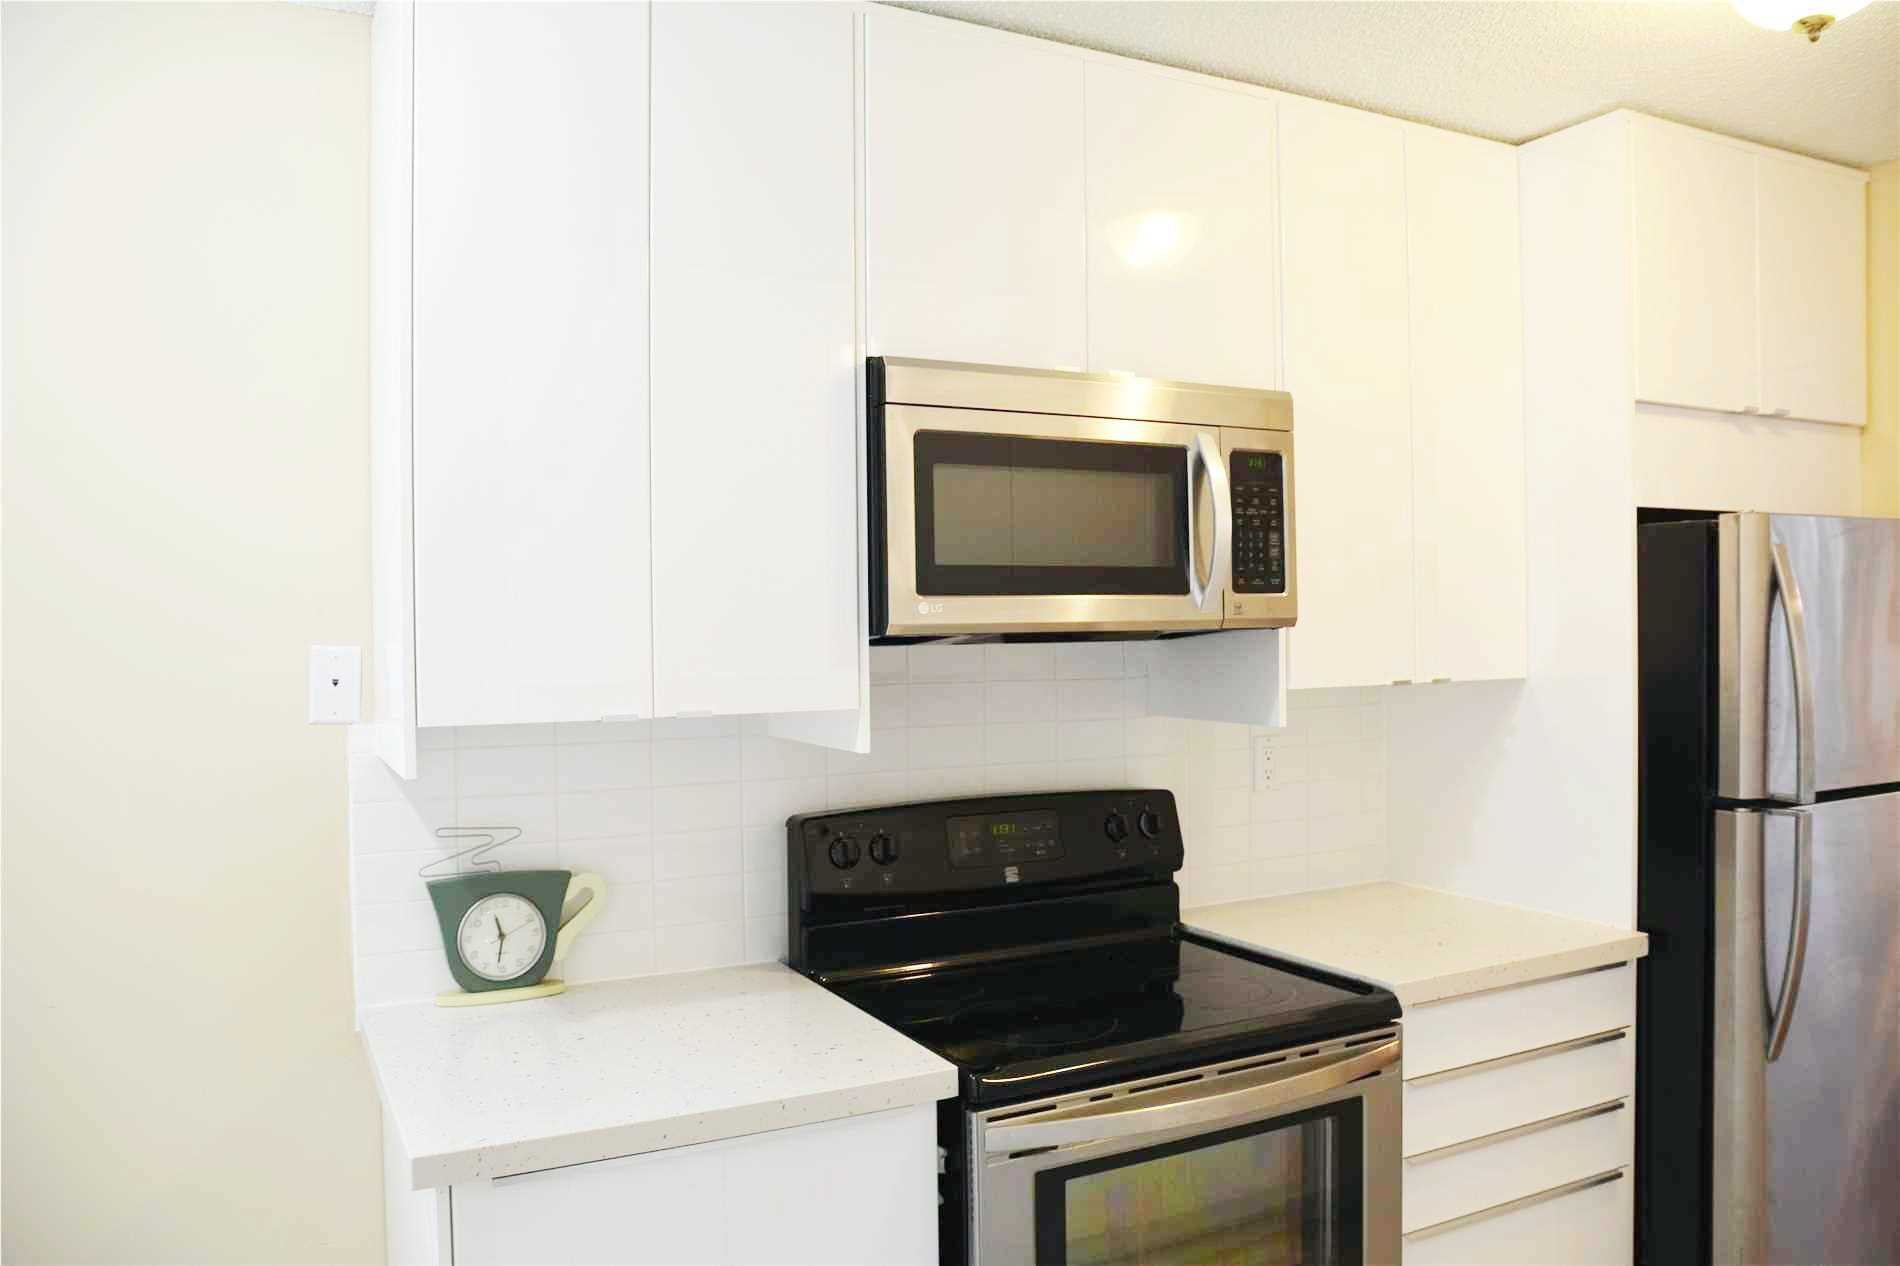 Image 11 of 14 showing inside of 3 Bedroom Condo Apt Apartment for Lease at 205 Hilda Ave Unit# 2104, Toronto M2M4B1